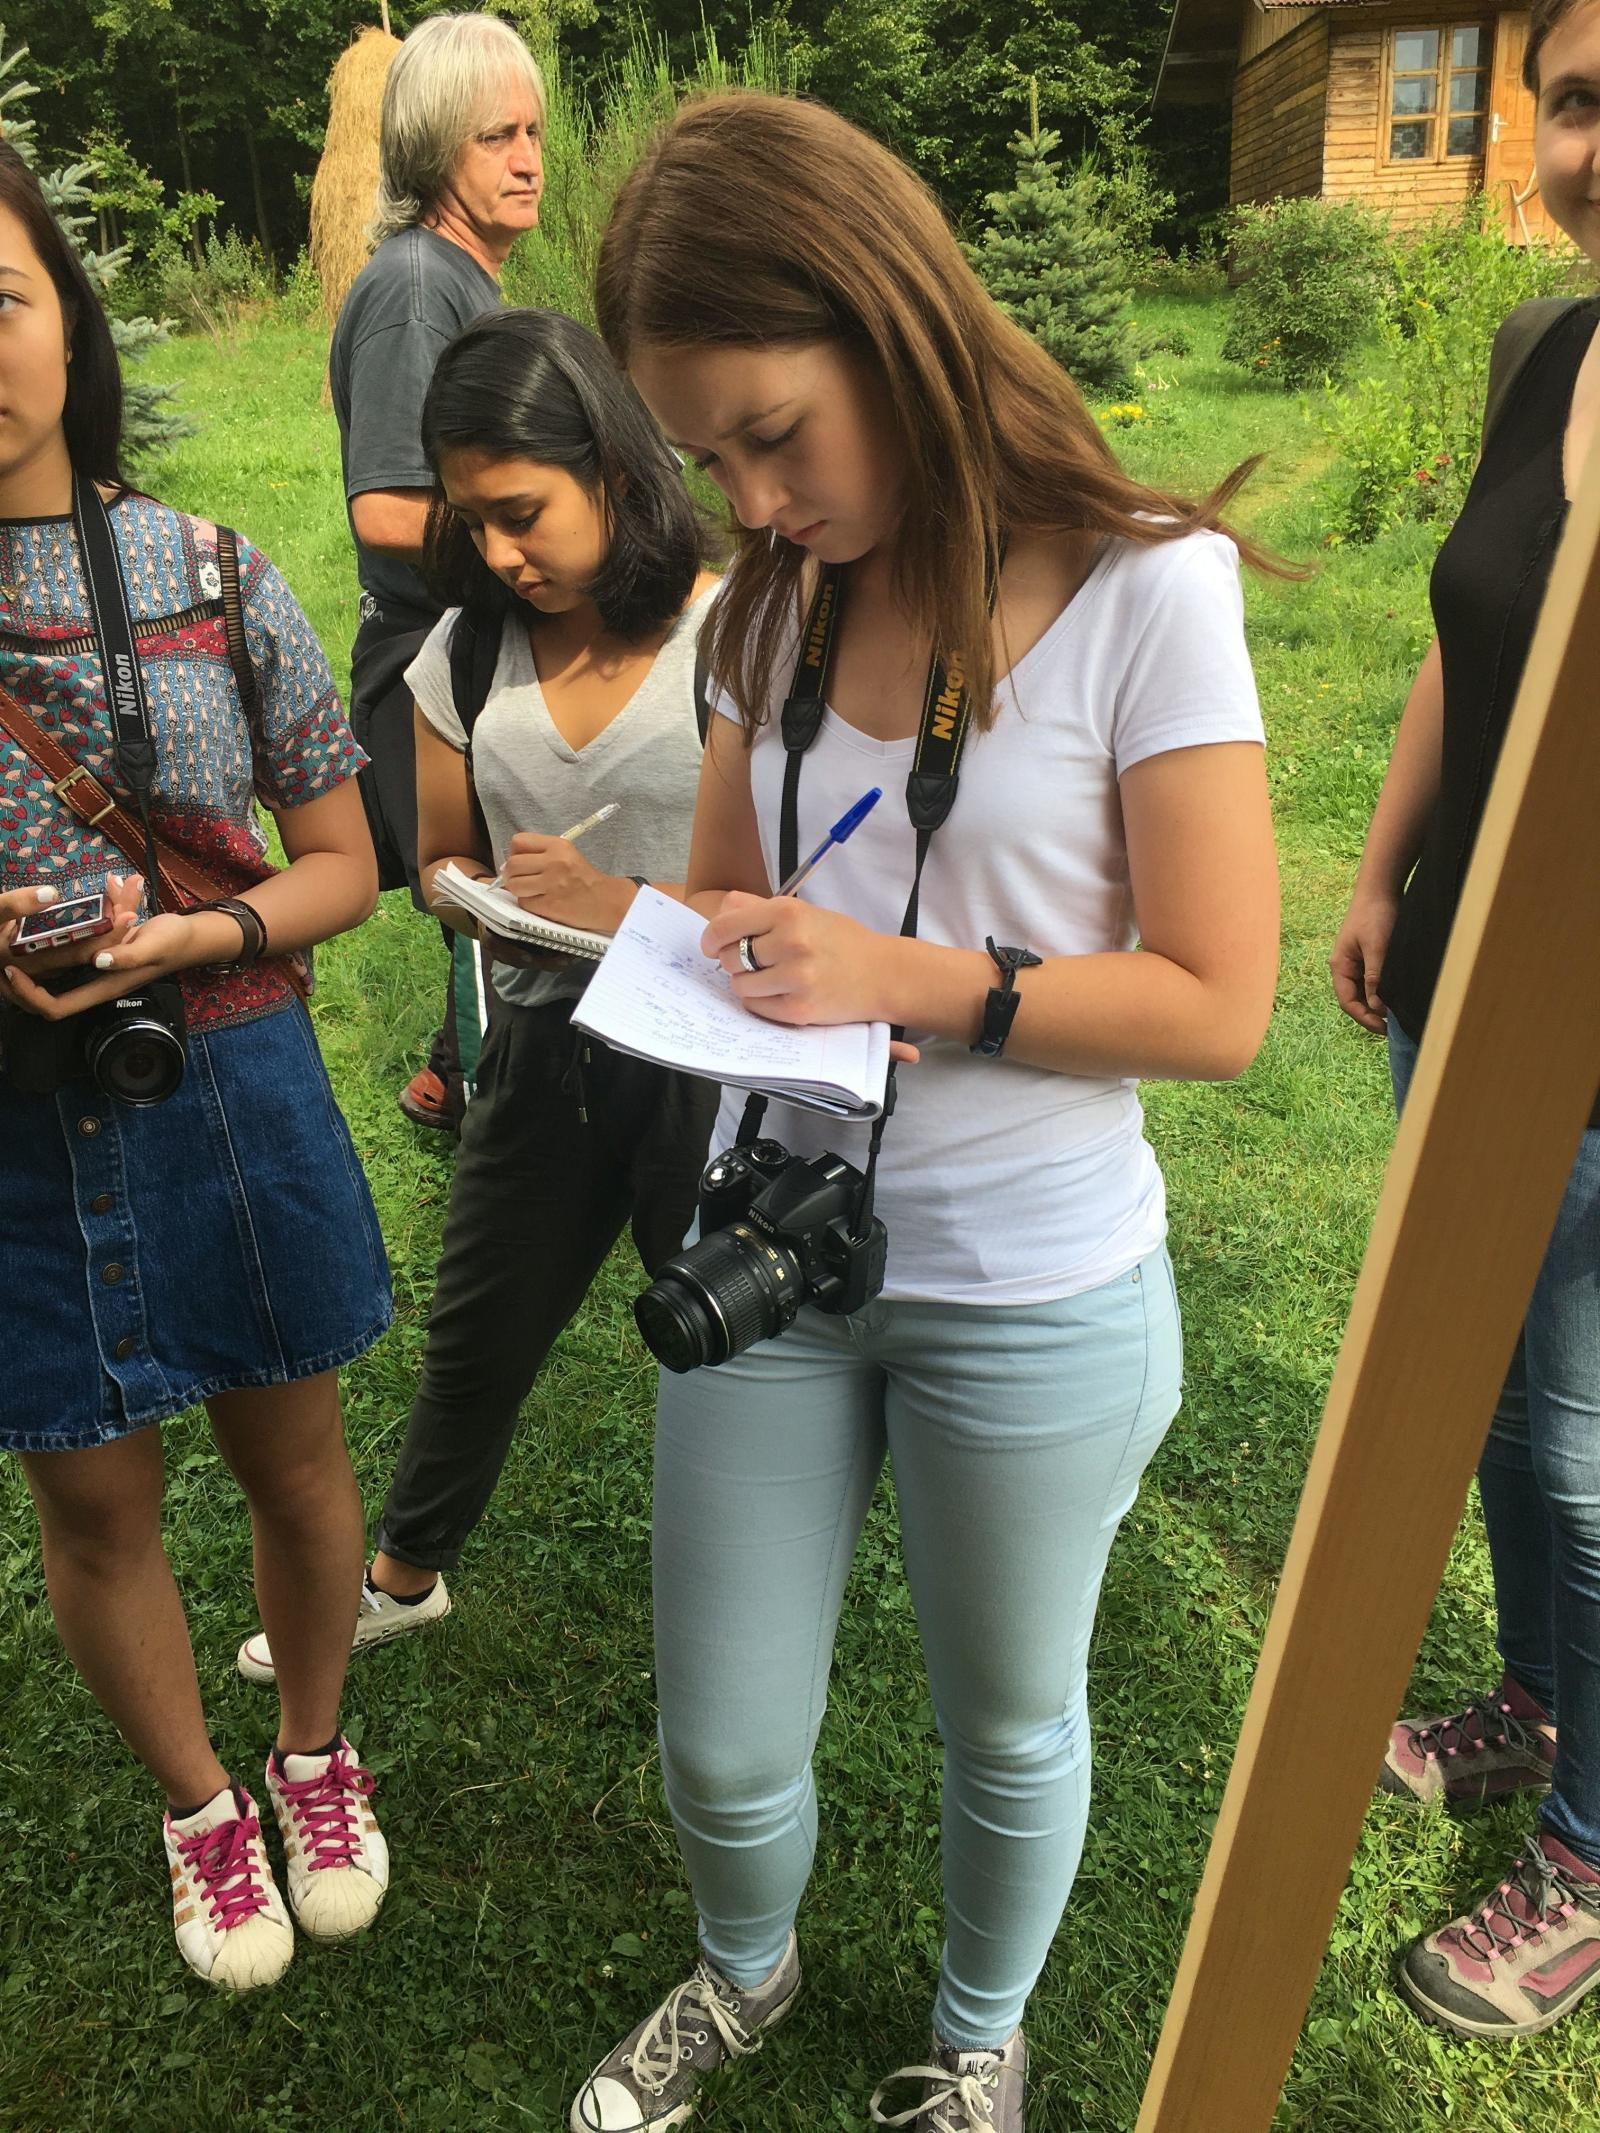 Teenage volunteer takes note during an interview on her Journalism Project in Romania